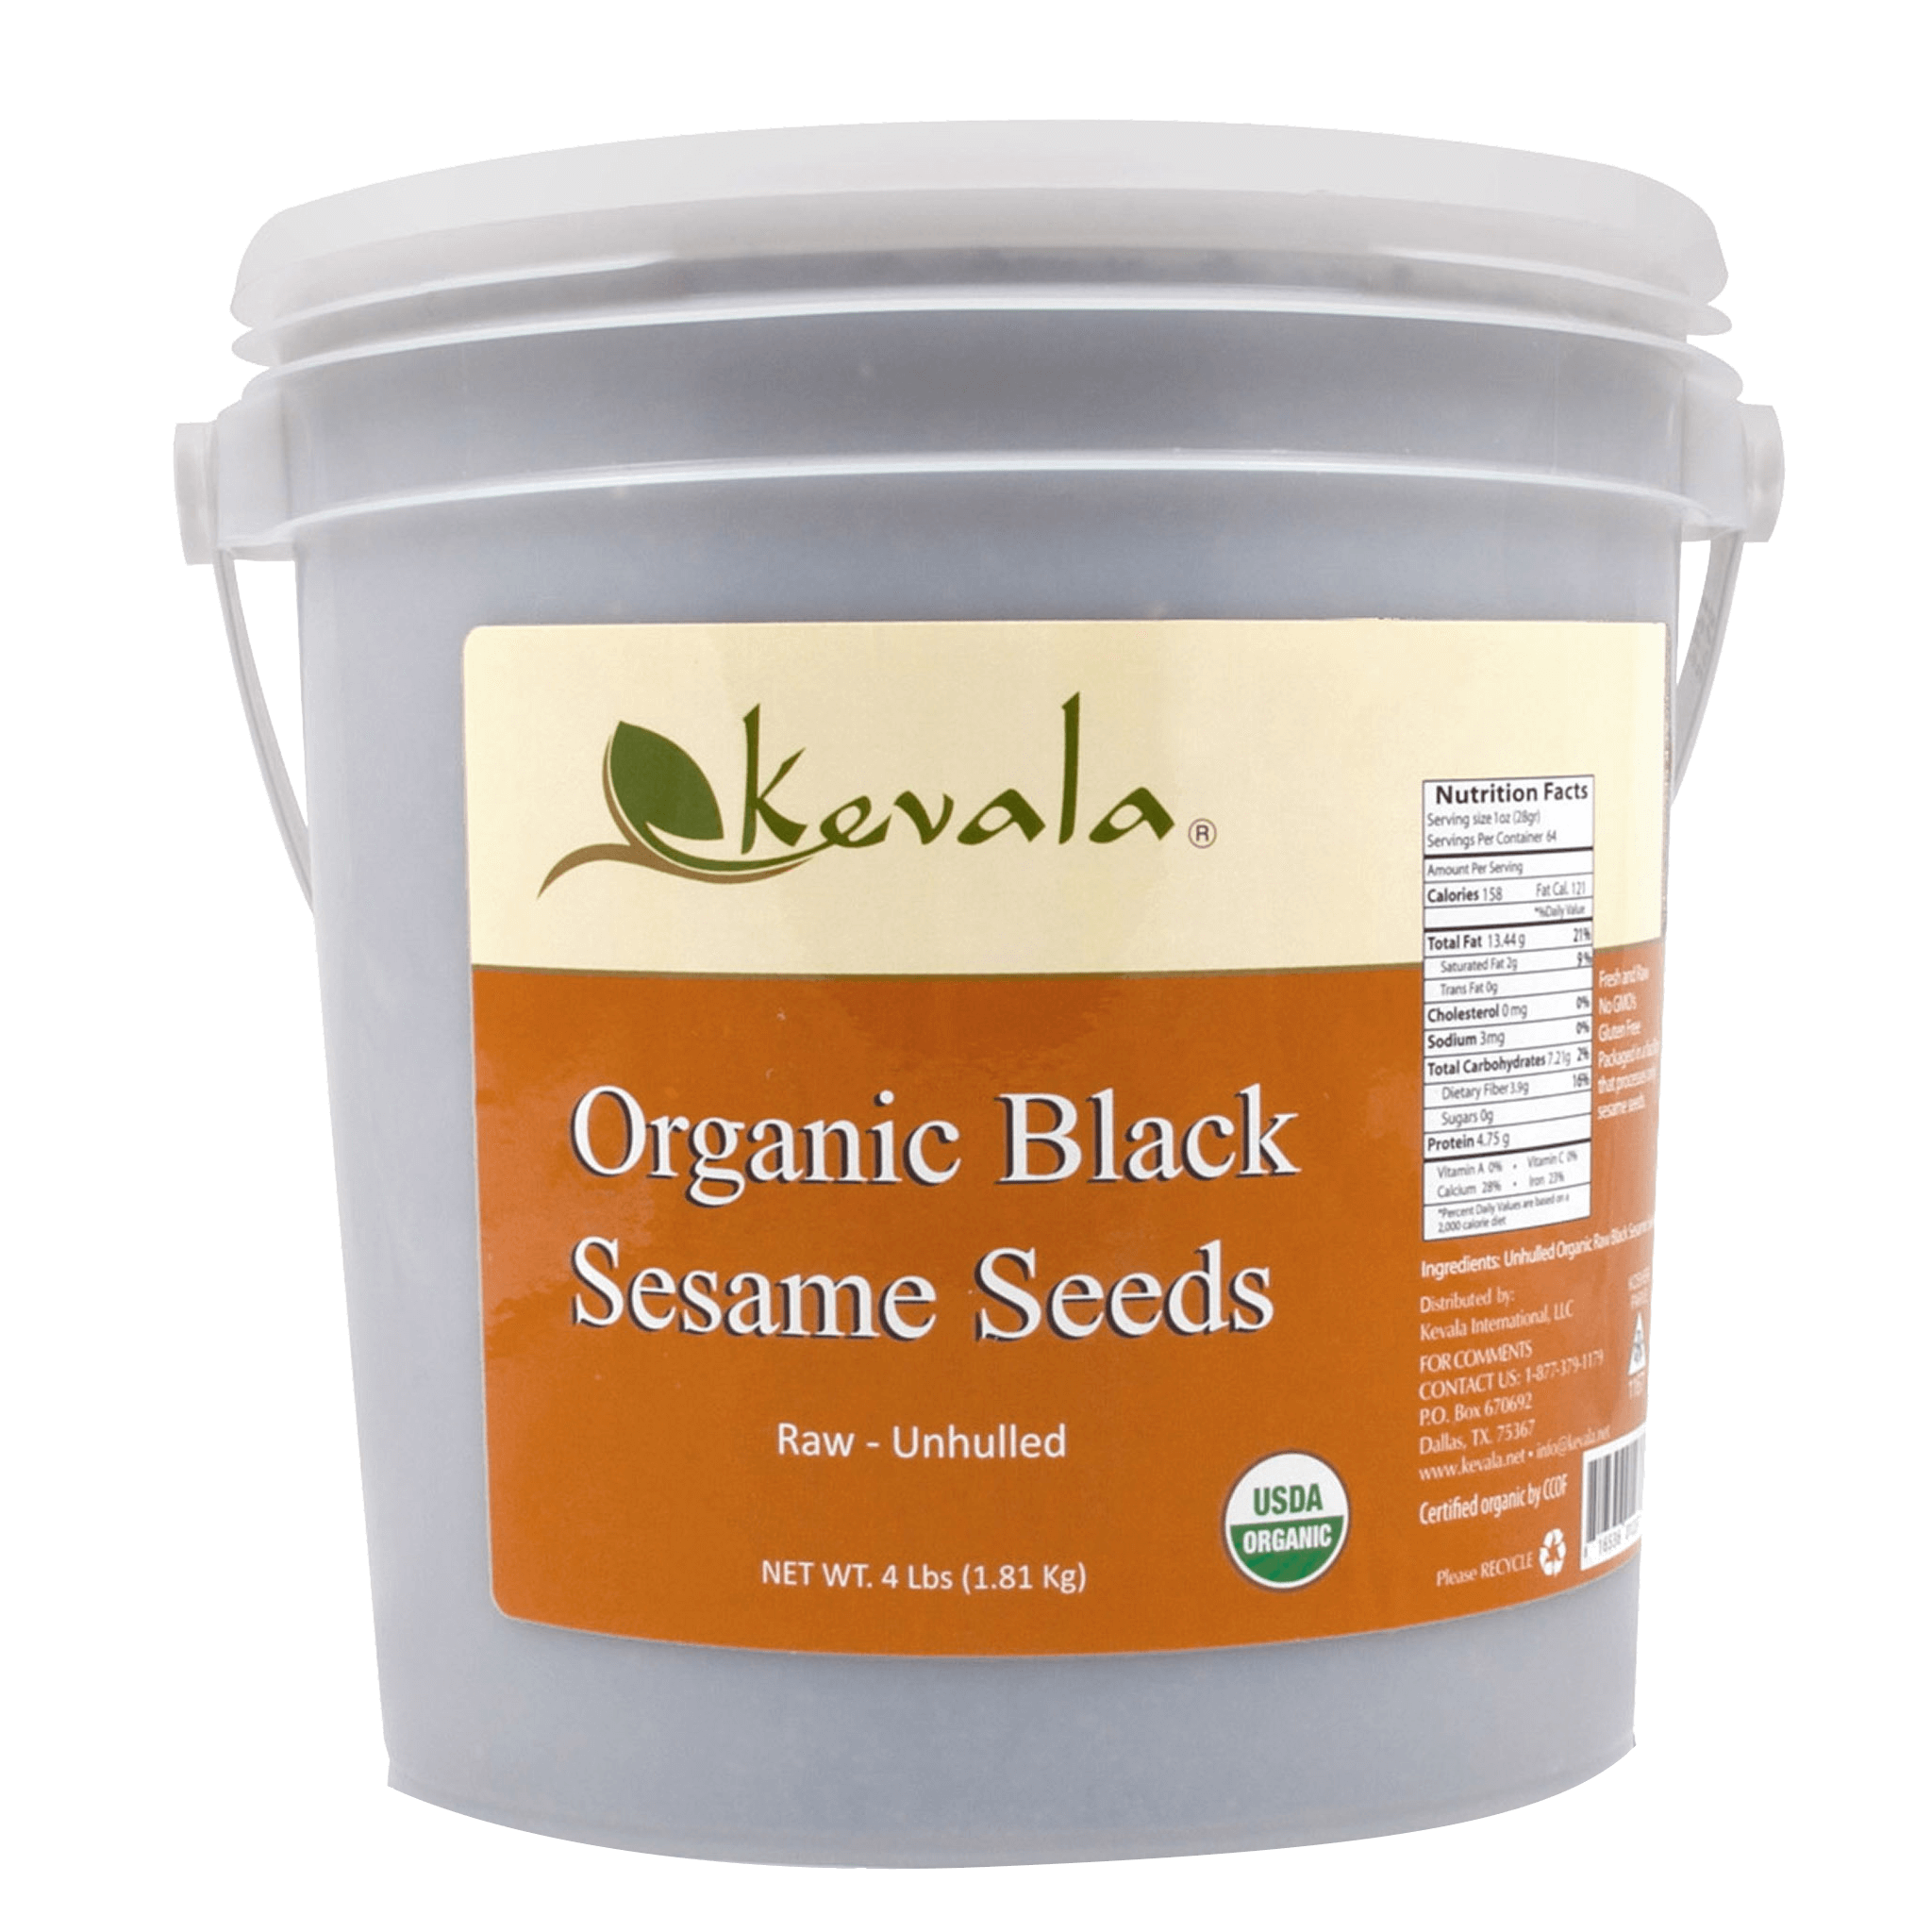 Kevala Organic Raw Black Sesame Seeds (Unhulled) 4 lb